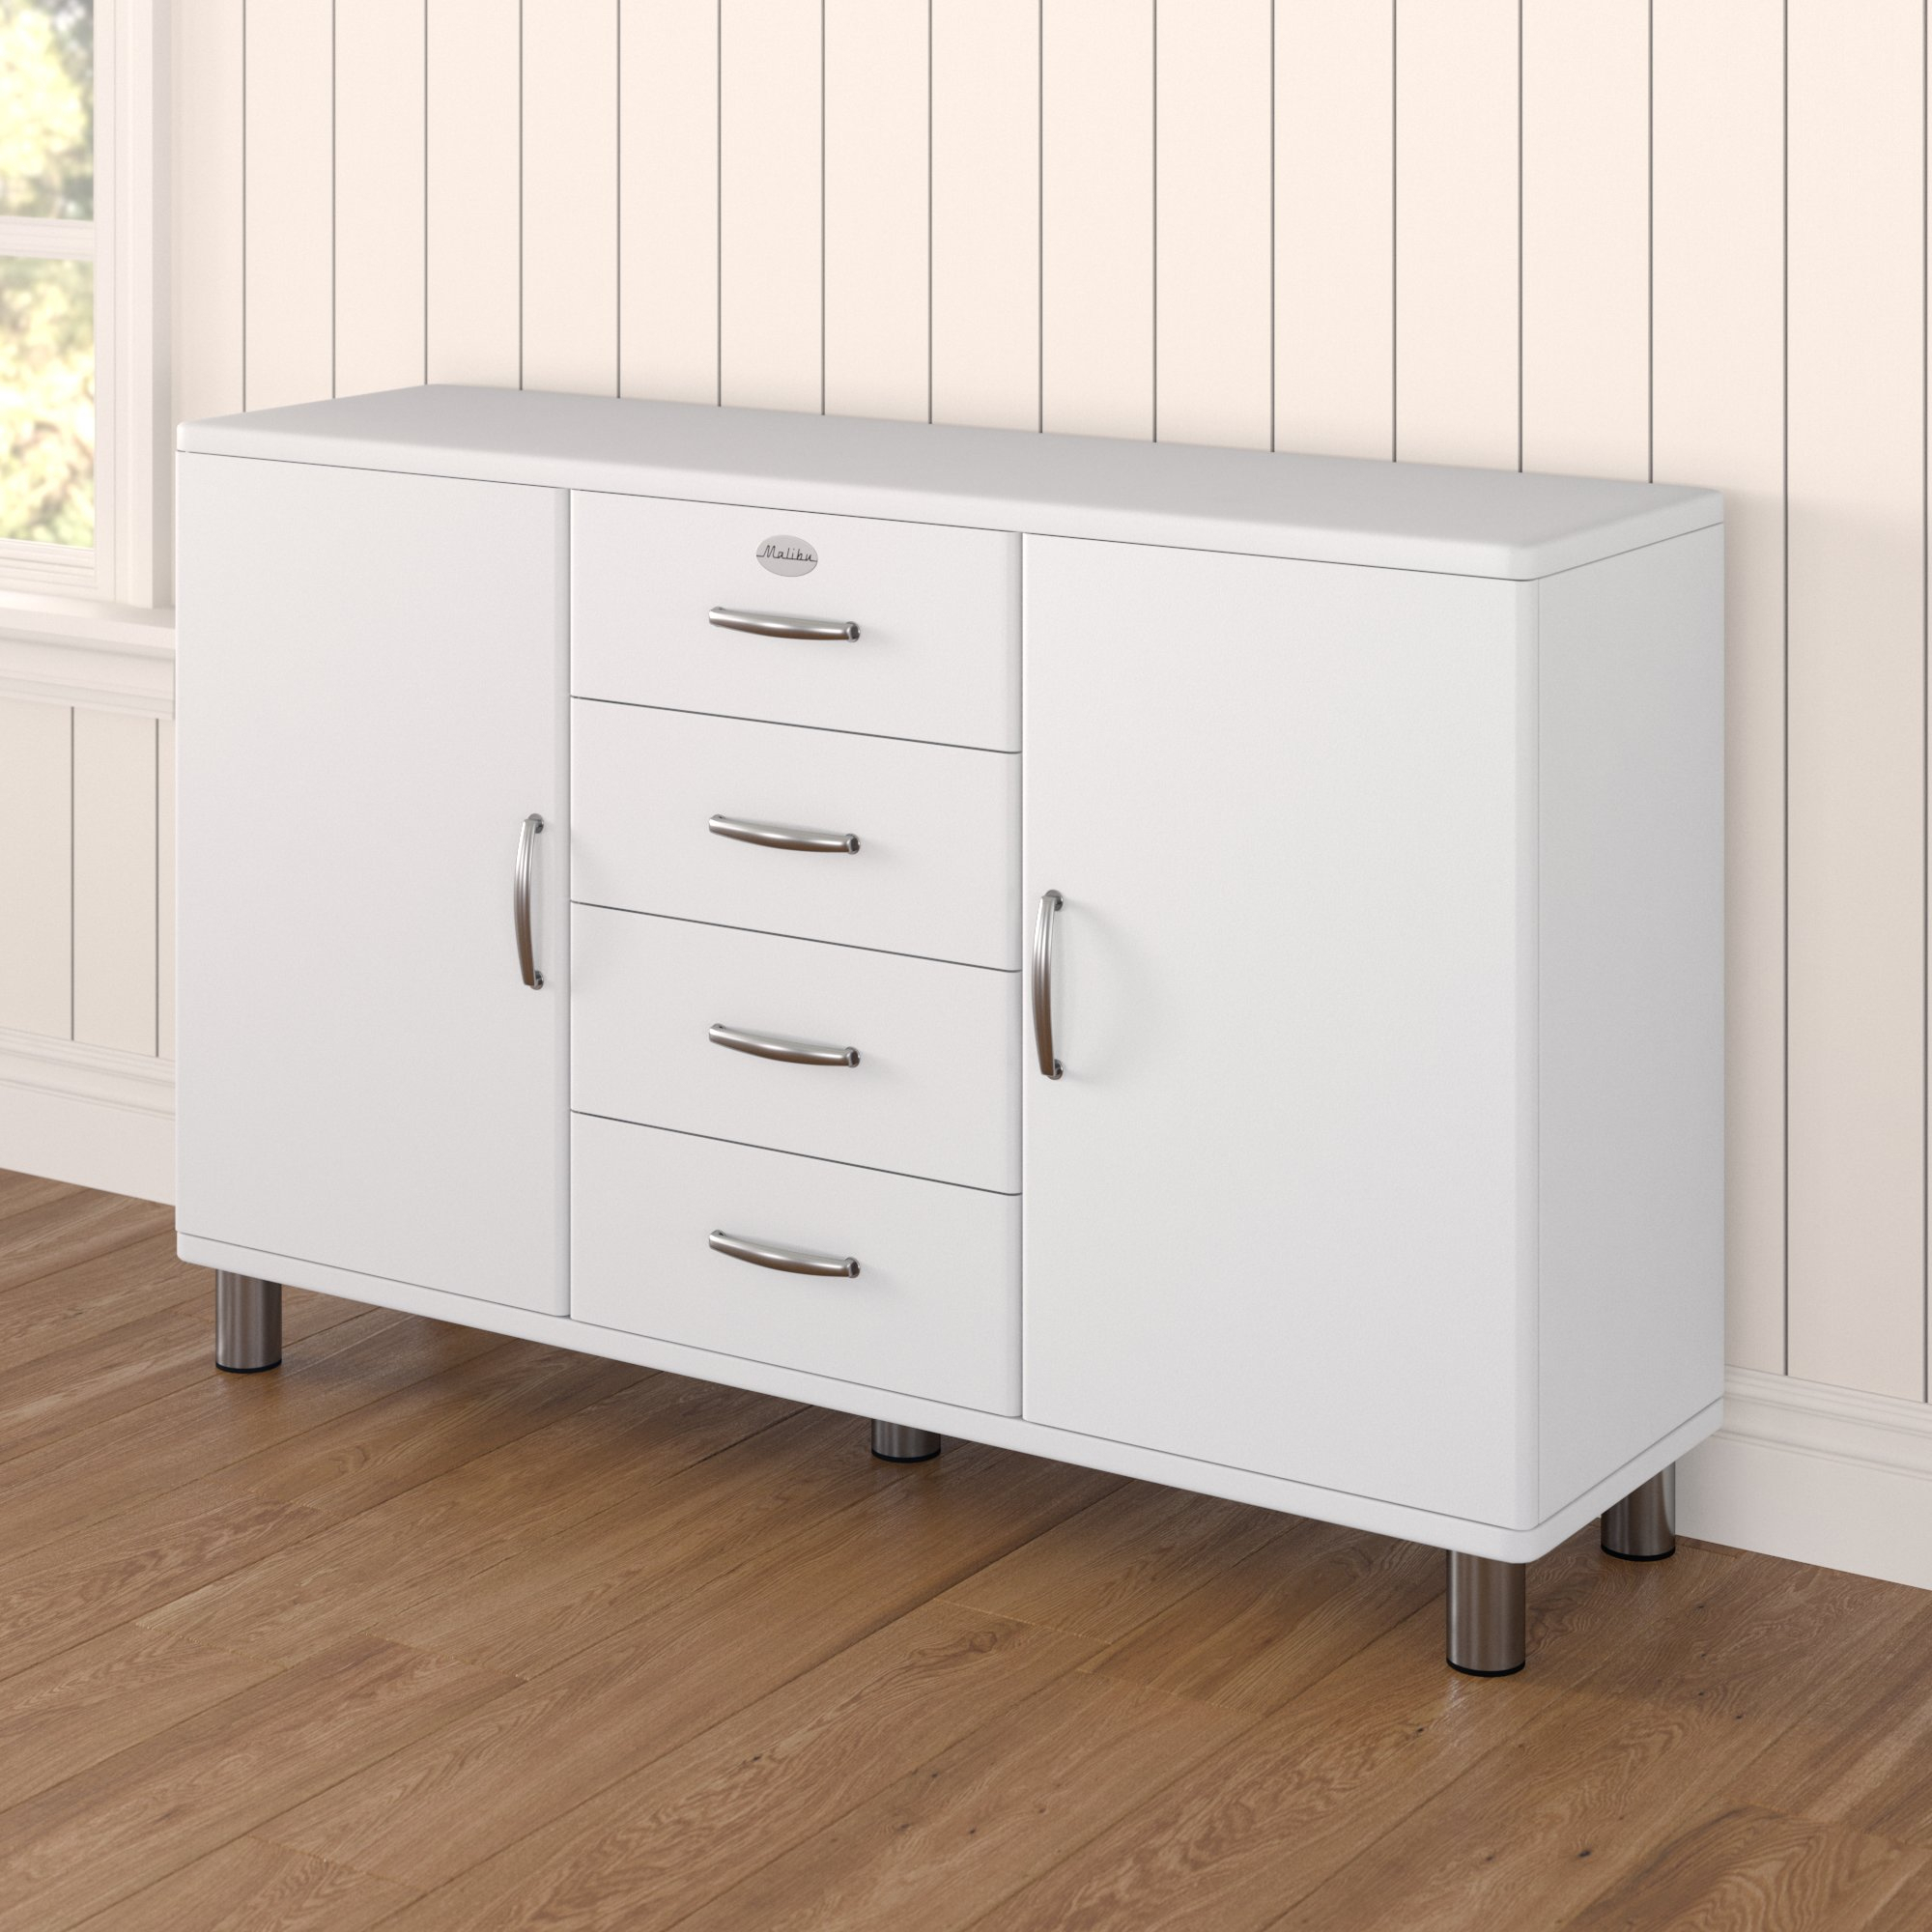 Inspiration about Malibu 2 Door 4 Drawer Sideboard Pertaining To Current Malibu 2 Door 1 Drawer Sideboards (#5 of 20)